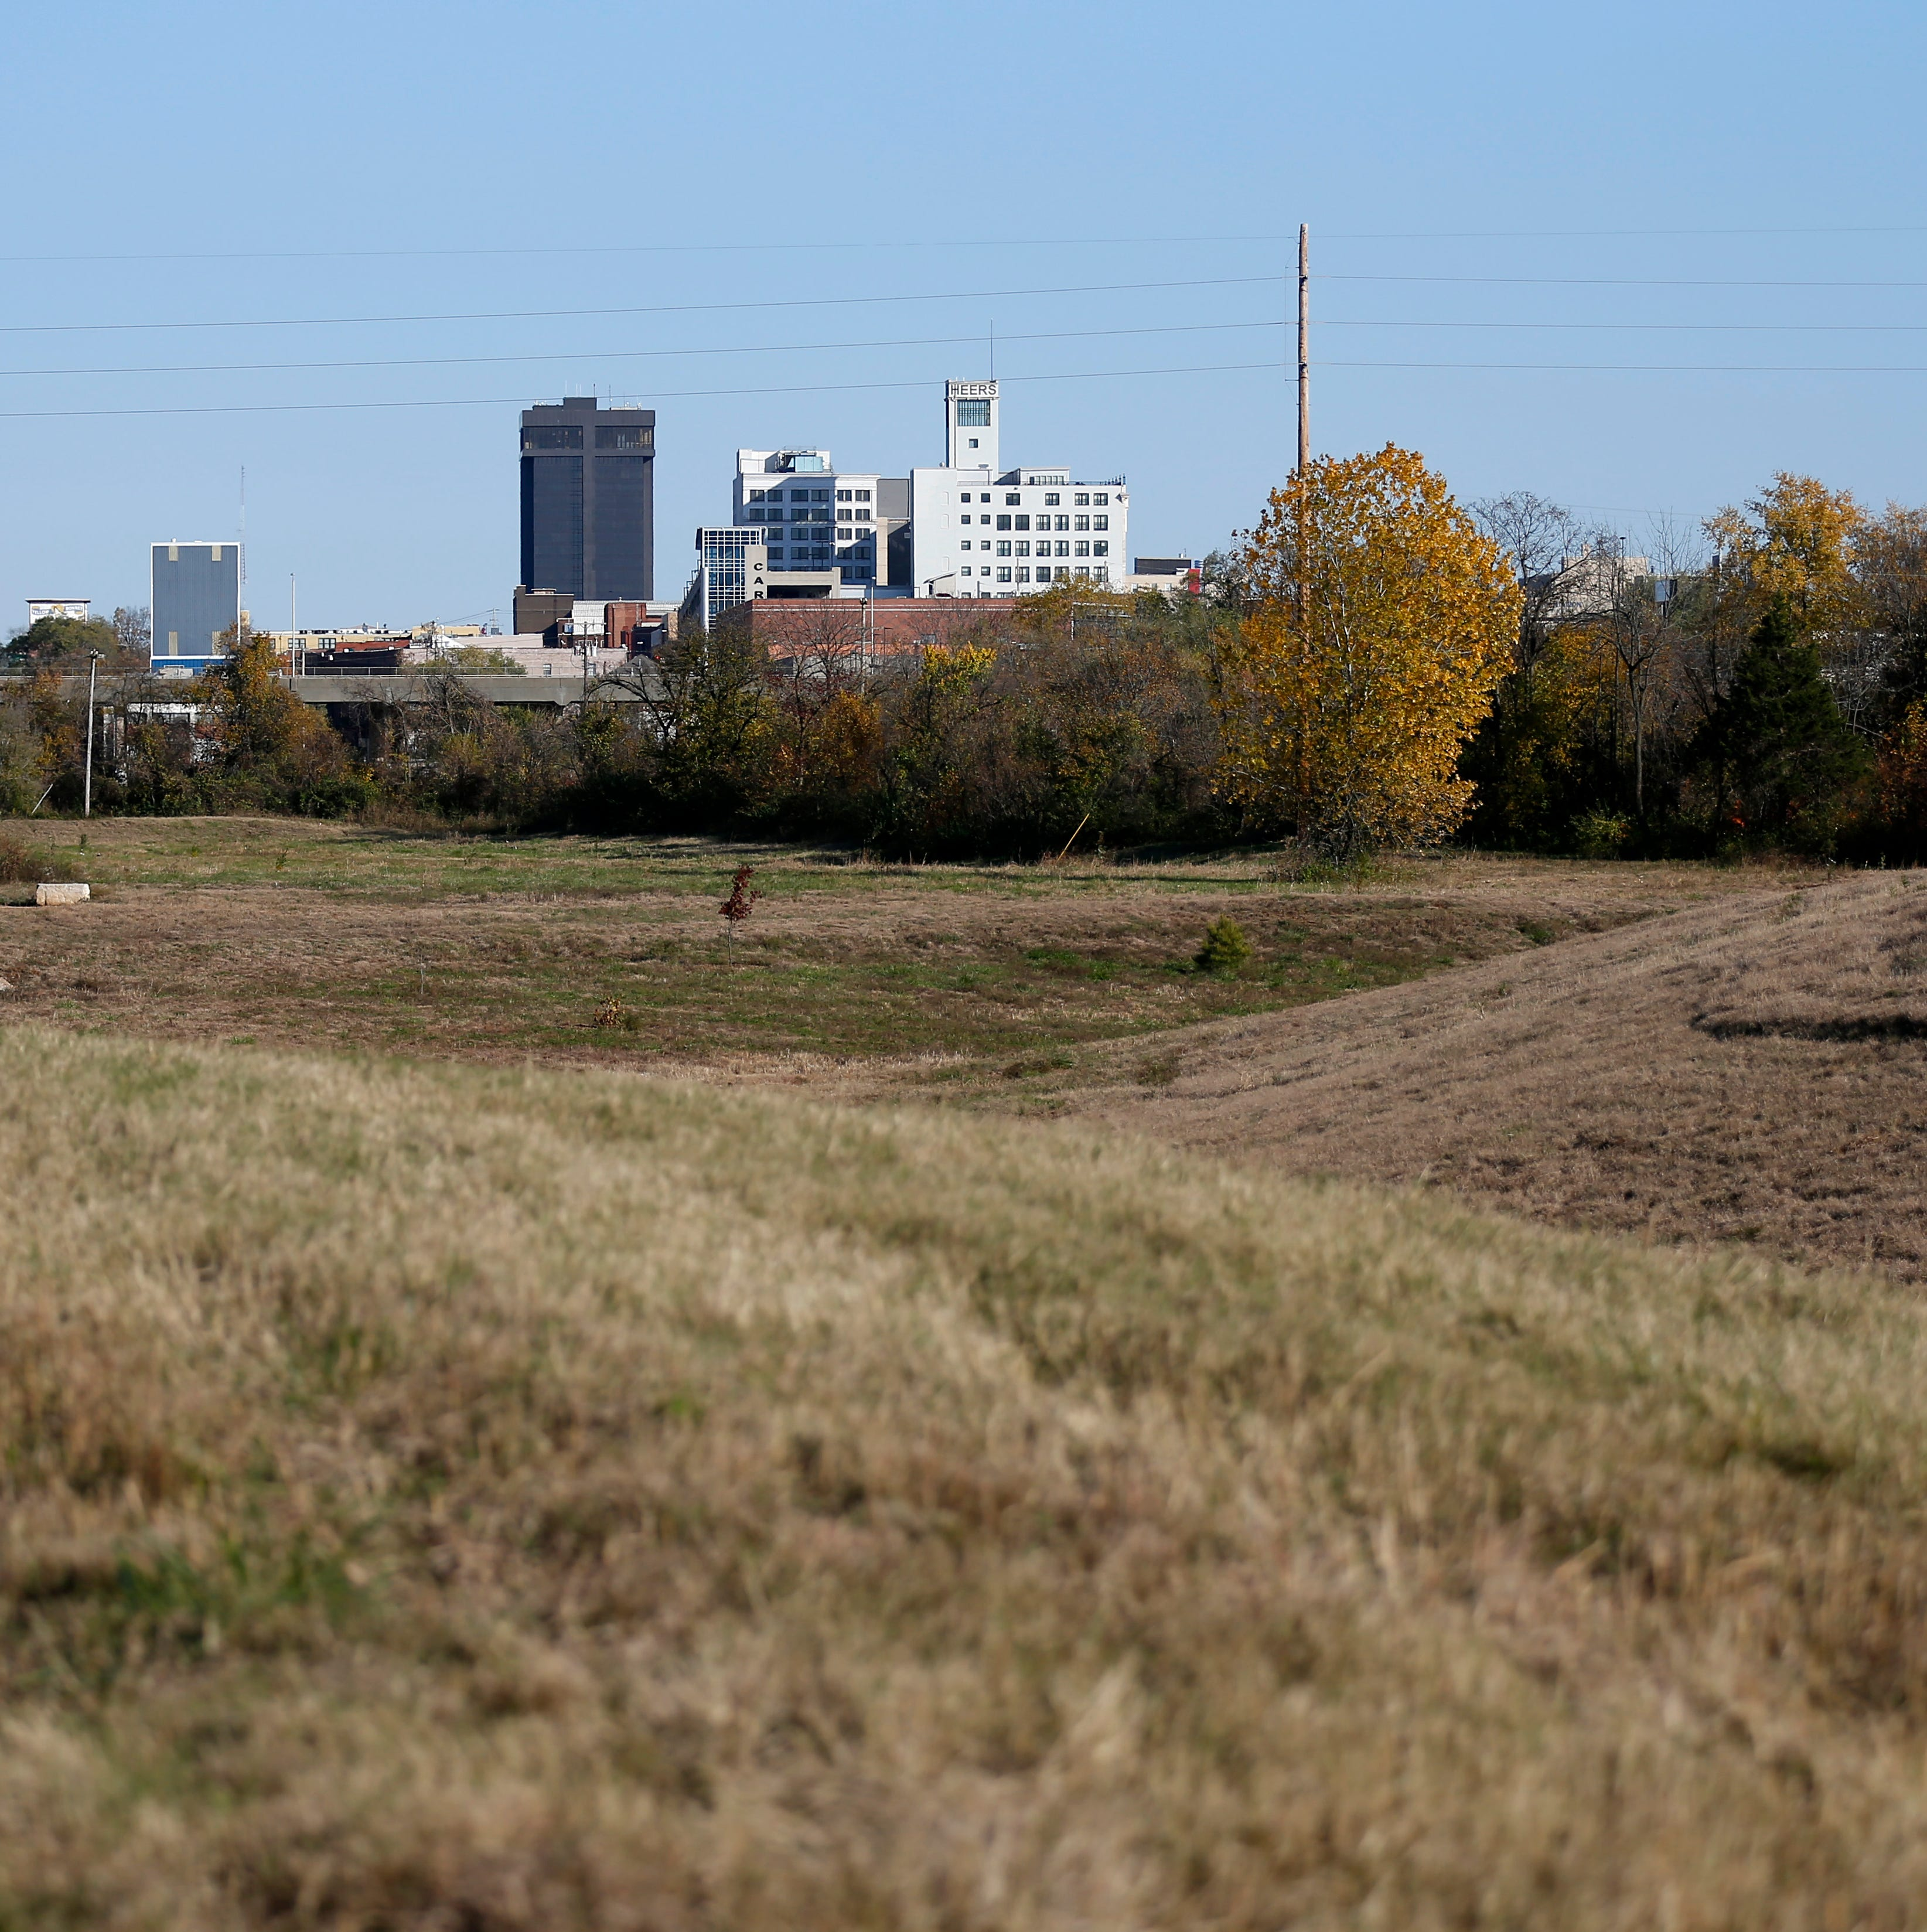 New Greenways trail will replace long-polluted West Meadows corridor